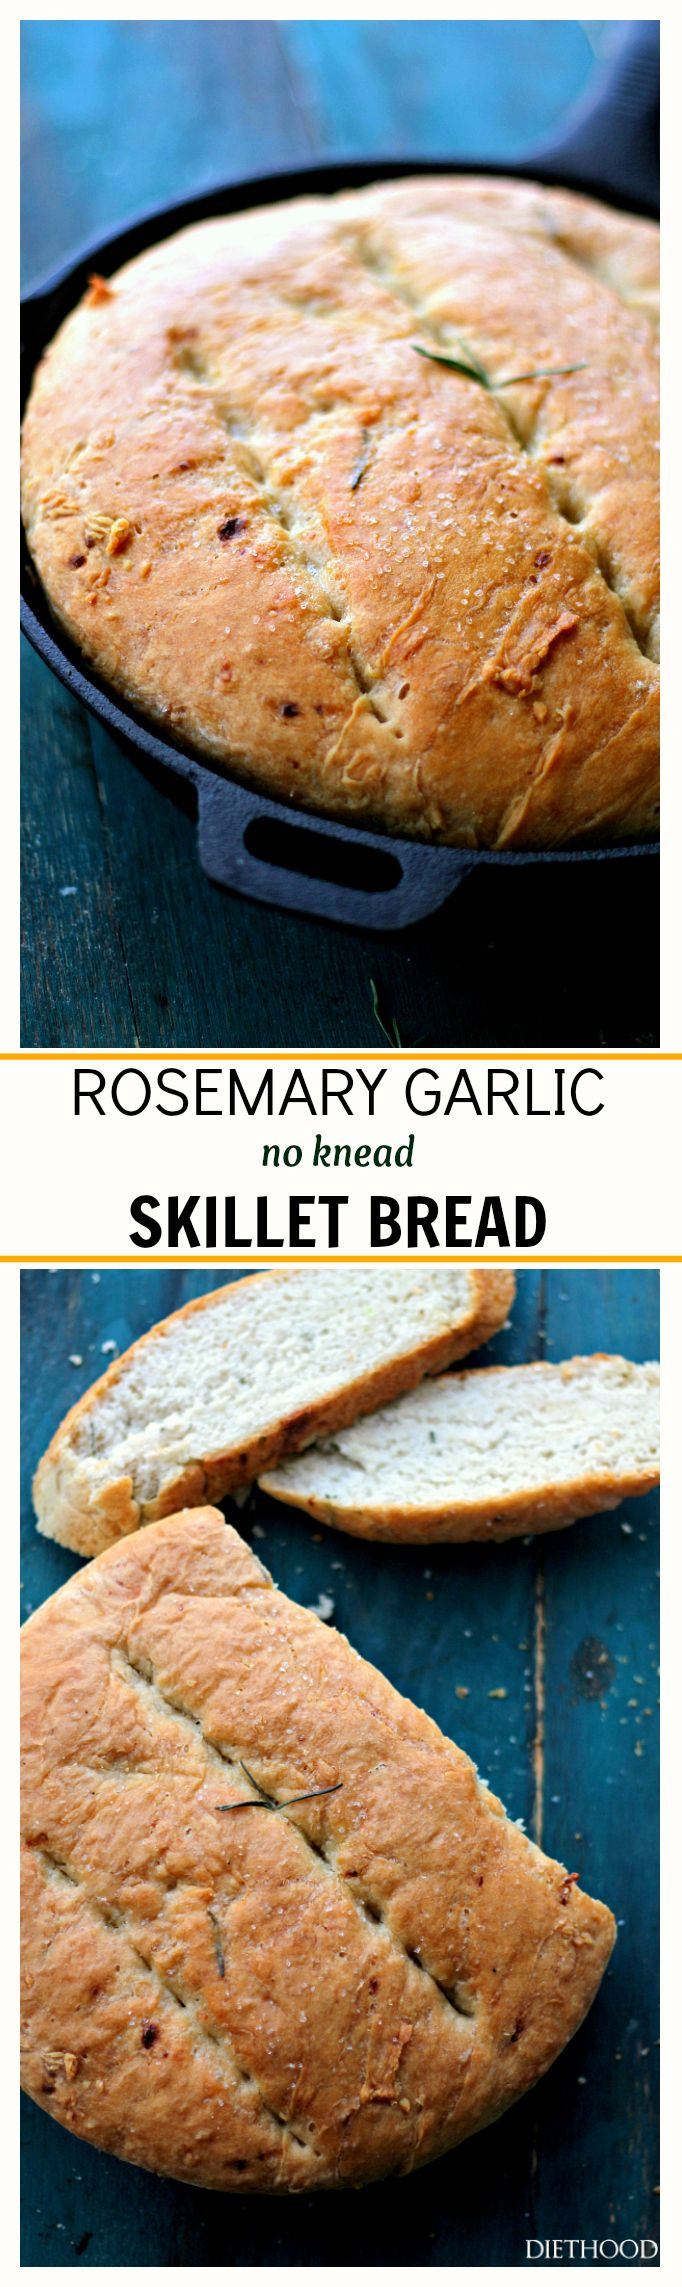 Rosemary Garlic No-Knead Skillet Bread – Warm, homemade and incredibly flavorful no-knead bread that is so easy to prepare, you'll want to make it again and again!